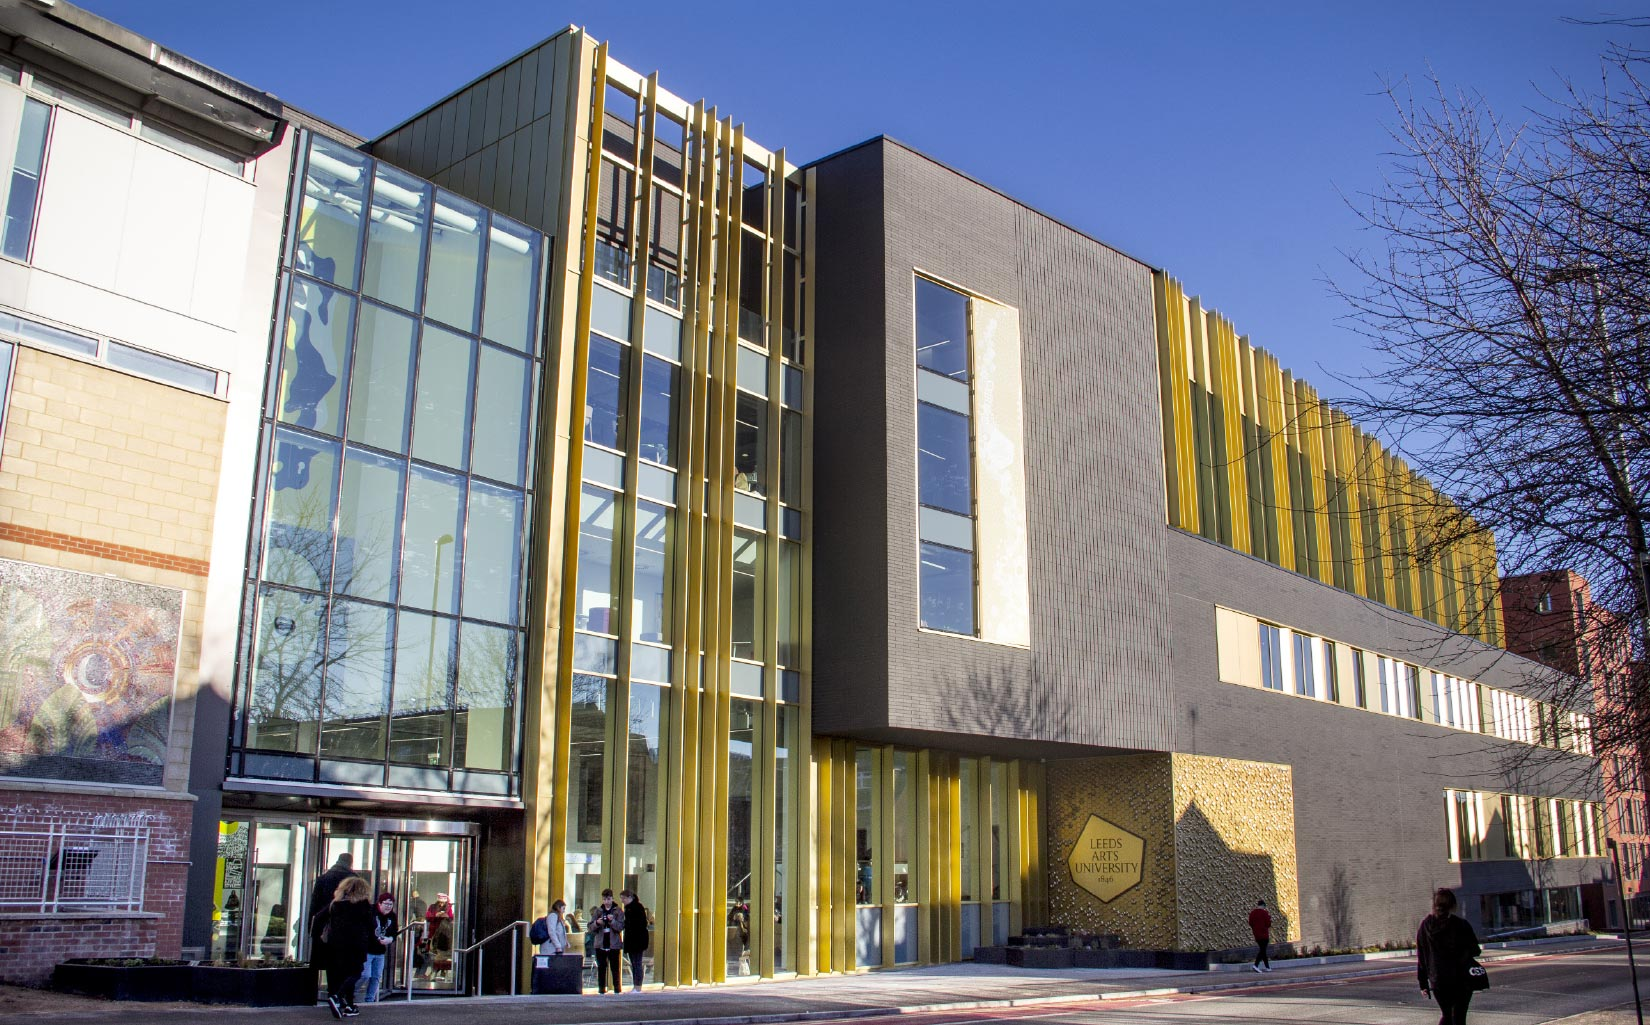 Leeds Arts University, approach to the entrance